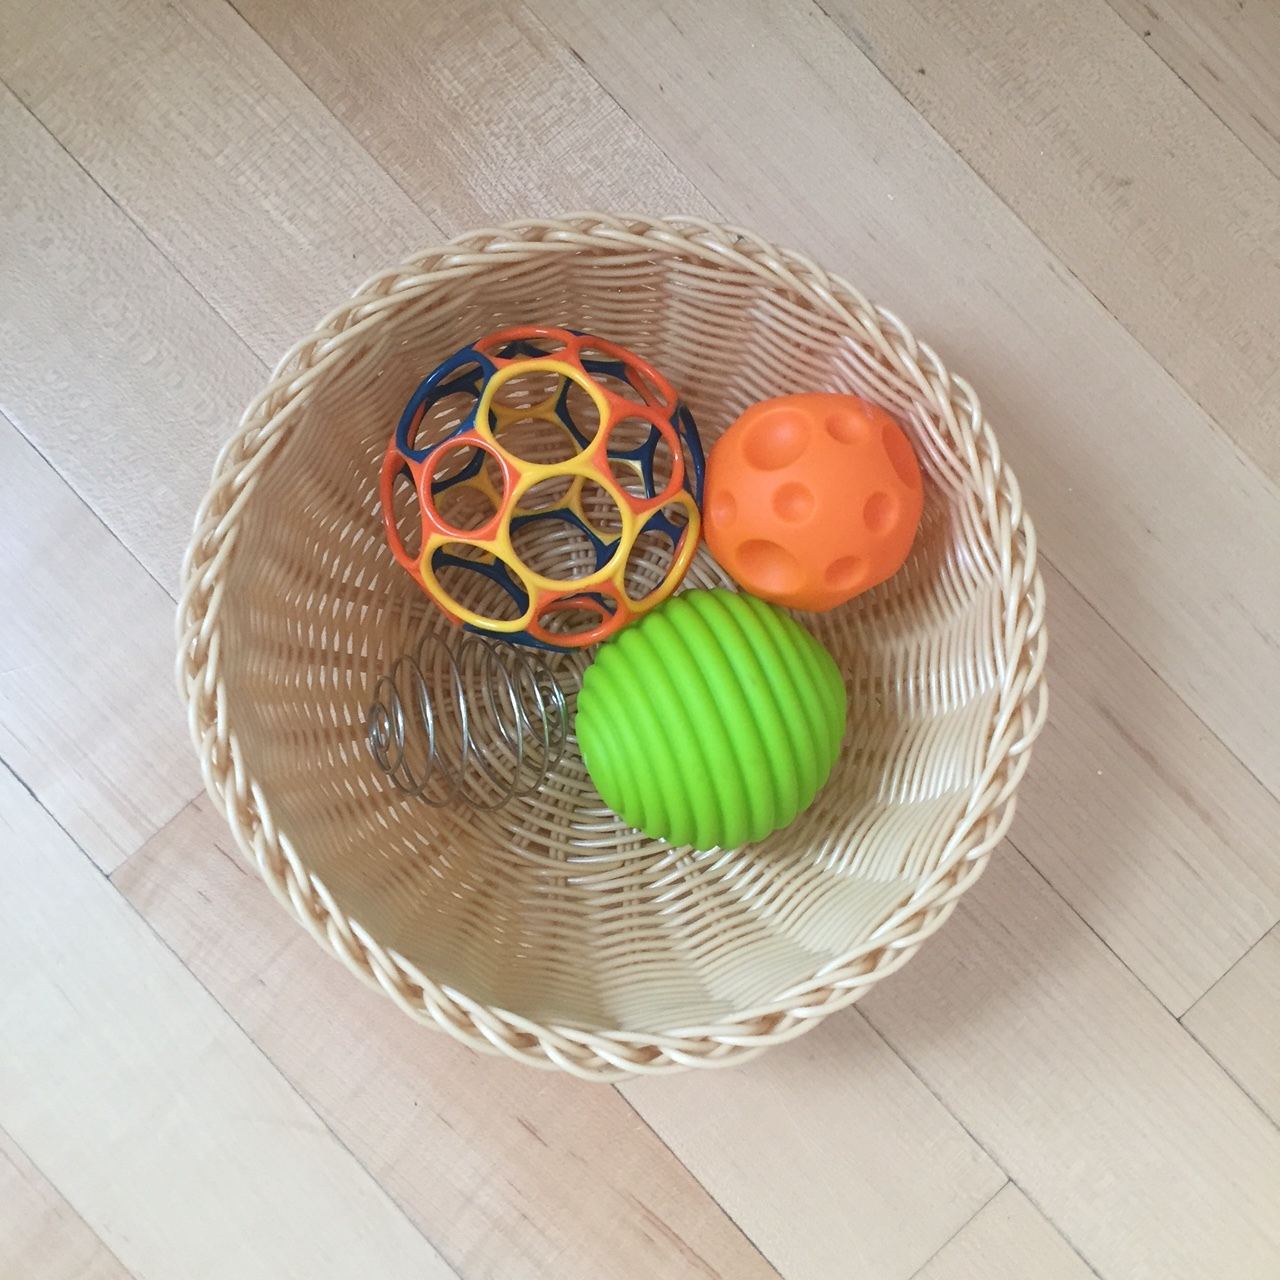 oball in basket with other balls